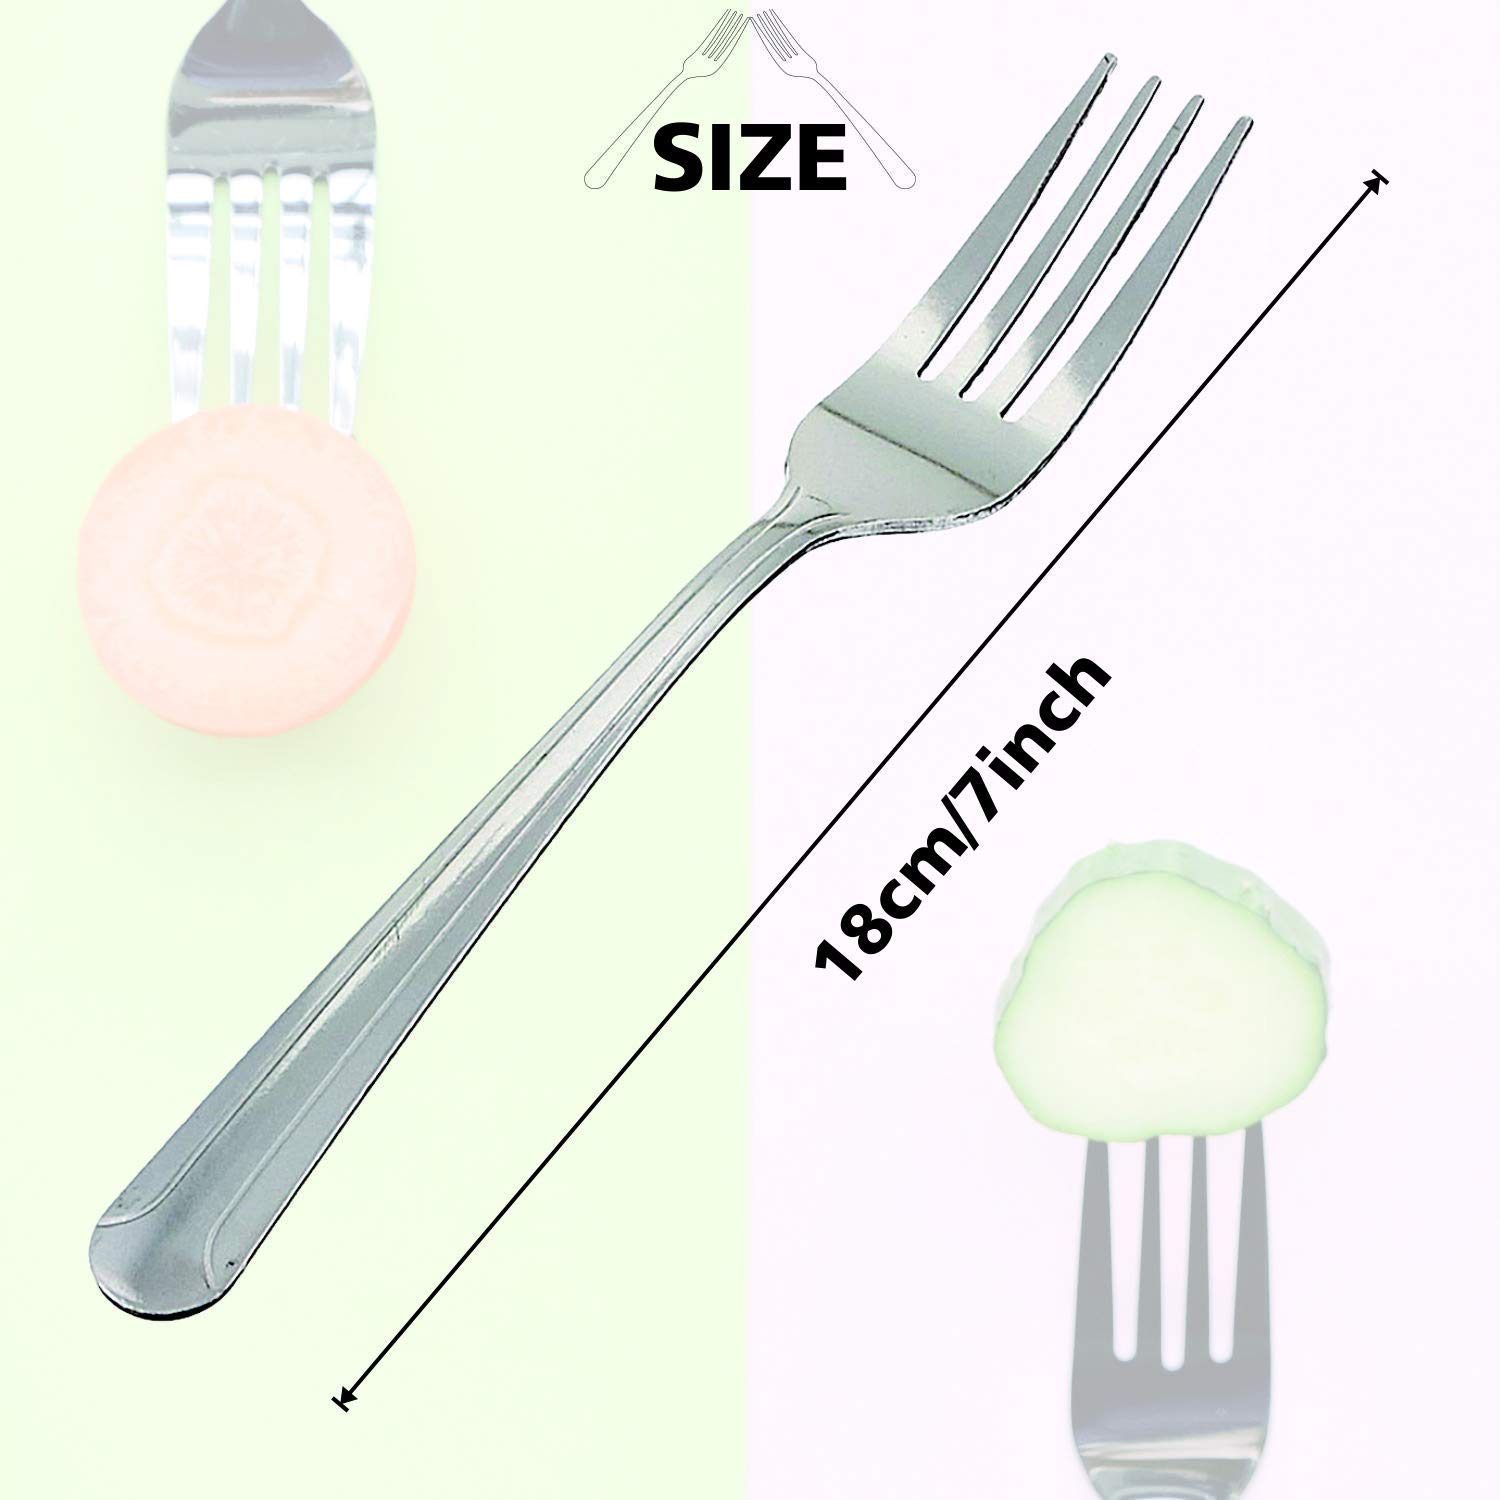 7 inches 12-Piece Stainless Steel Forks Mirror Polished Modern Flatware Cutlery Forks for Kitchen Dinner Forks,Dominion Heavy Duty Forks